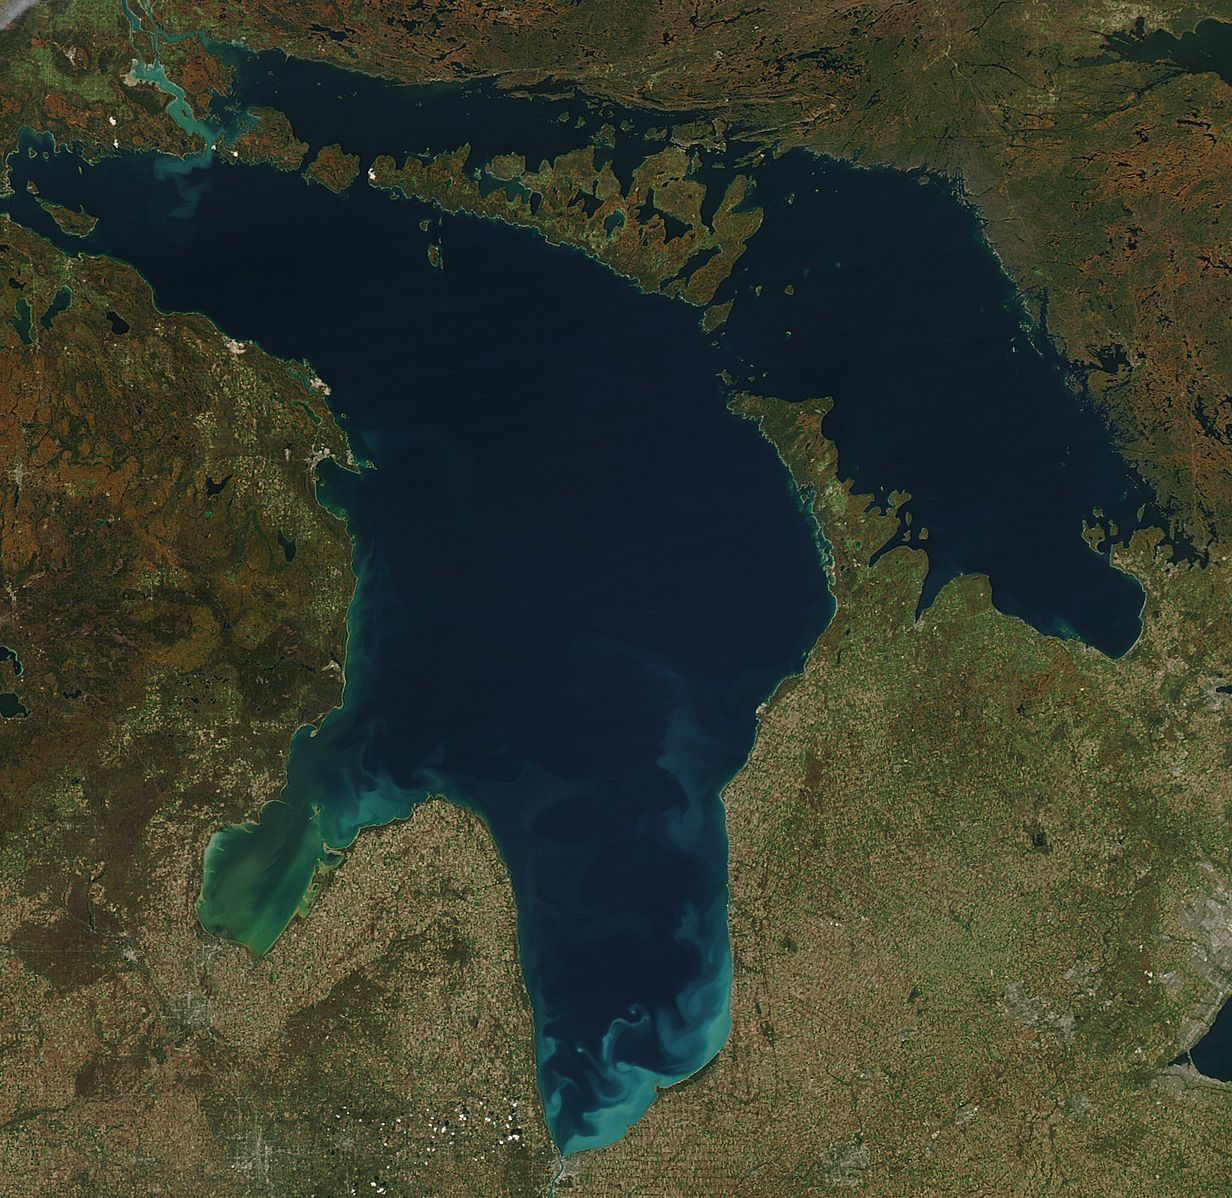 3. Lake Huron - -Surface Area: 23,007 sq. miles (2nd)-Volume: 850 cubic miles (3rd)-Depth: 750 ft. (4th)-Shore Length: 3,830 miles (1st)